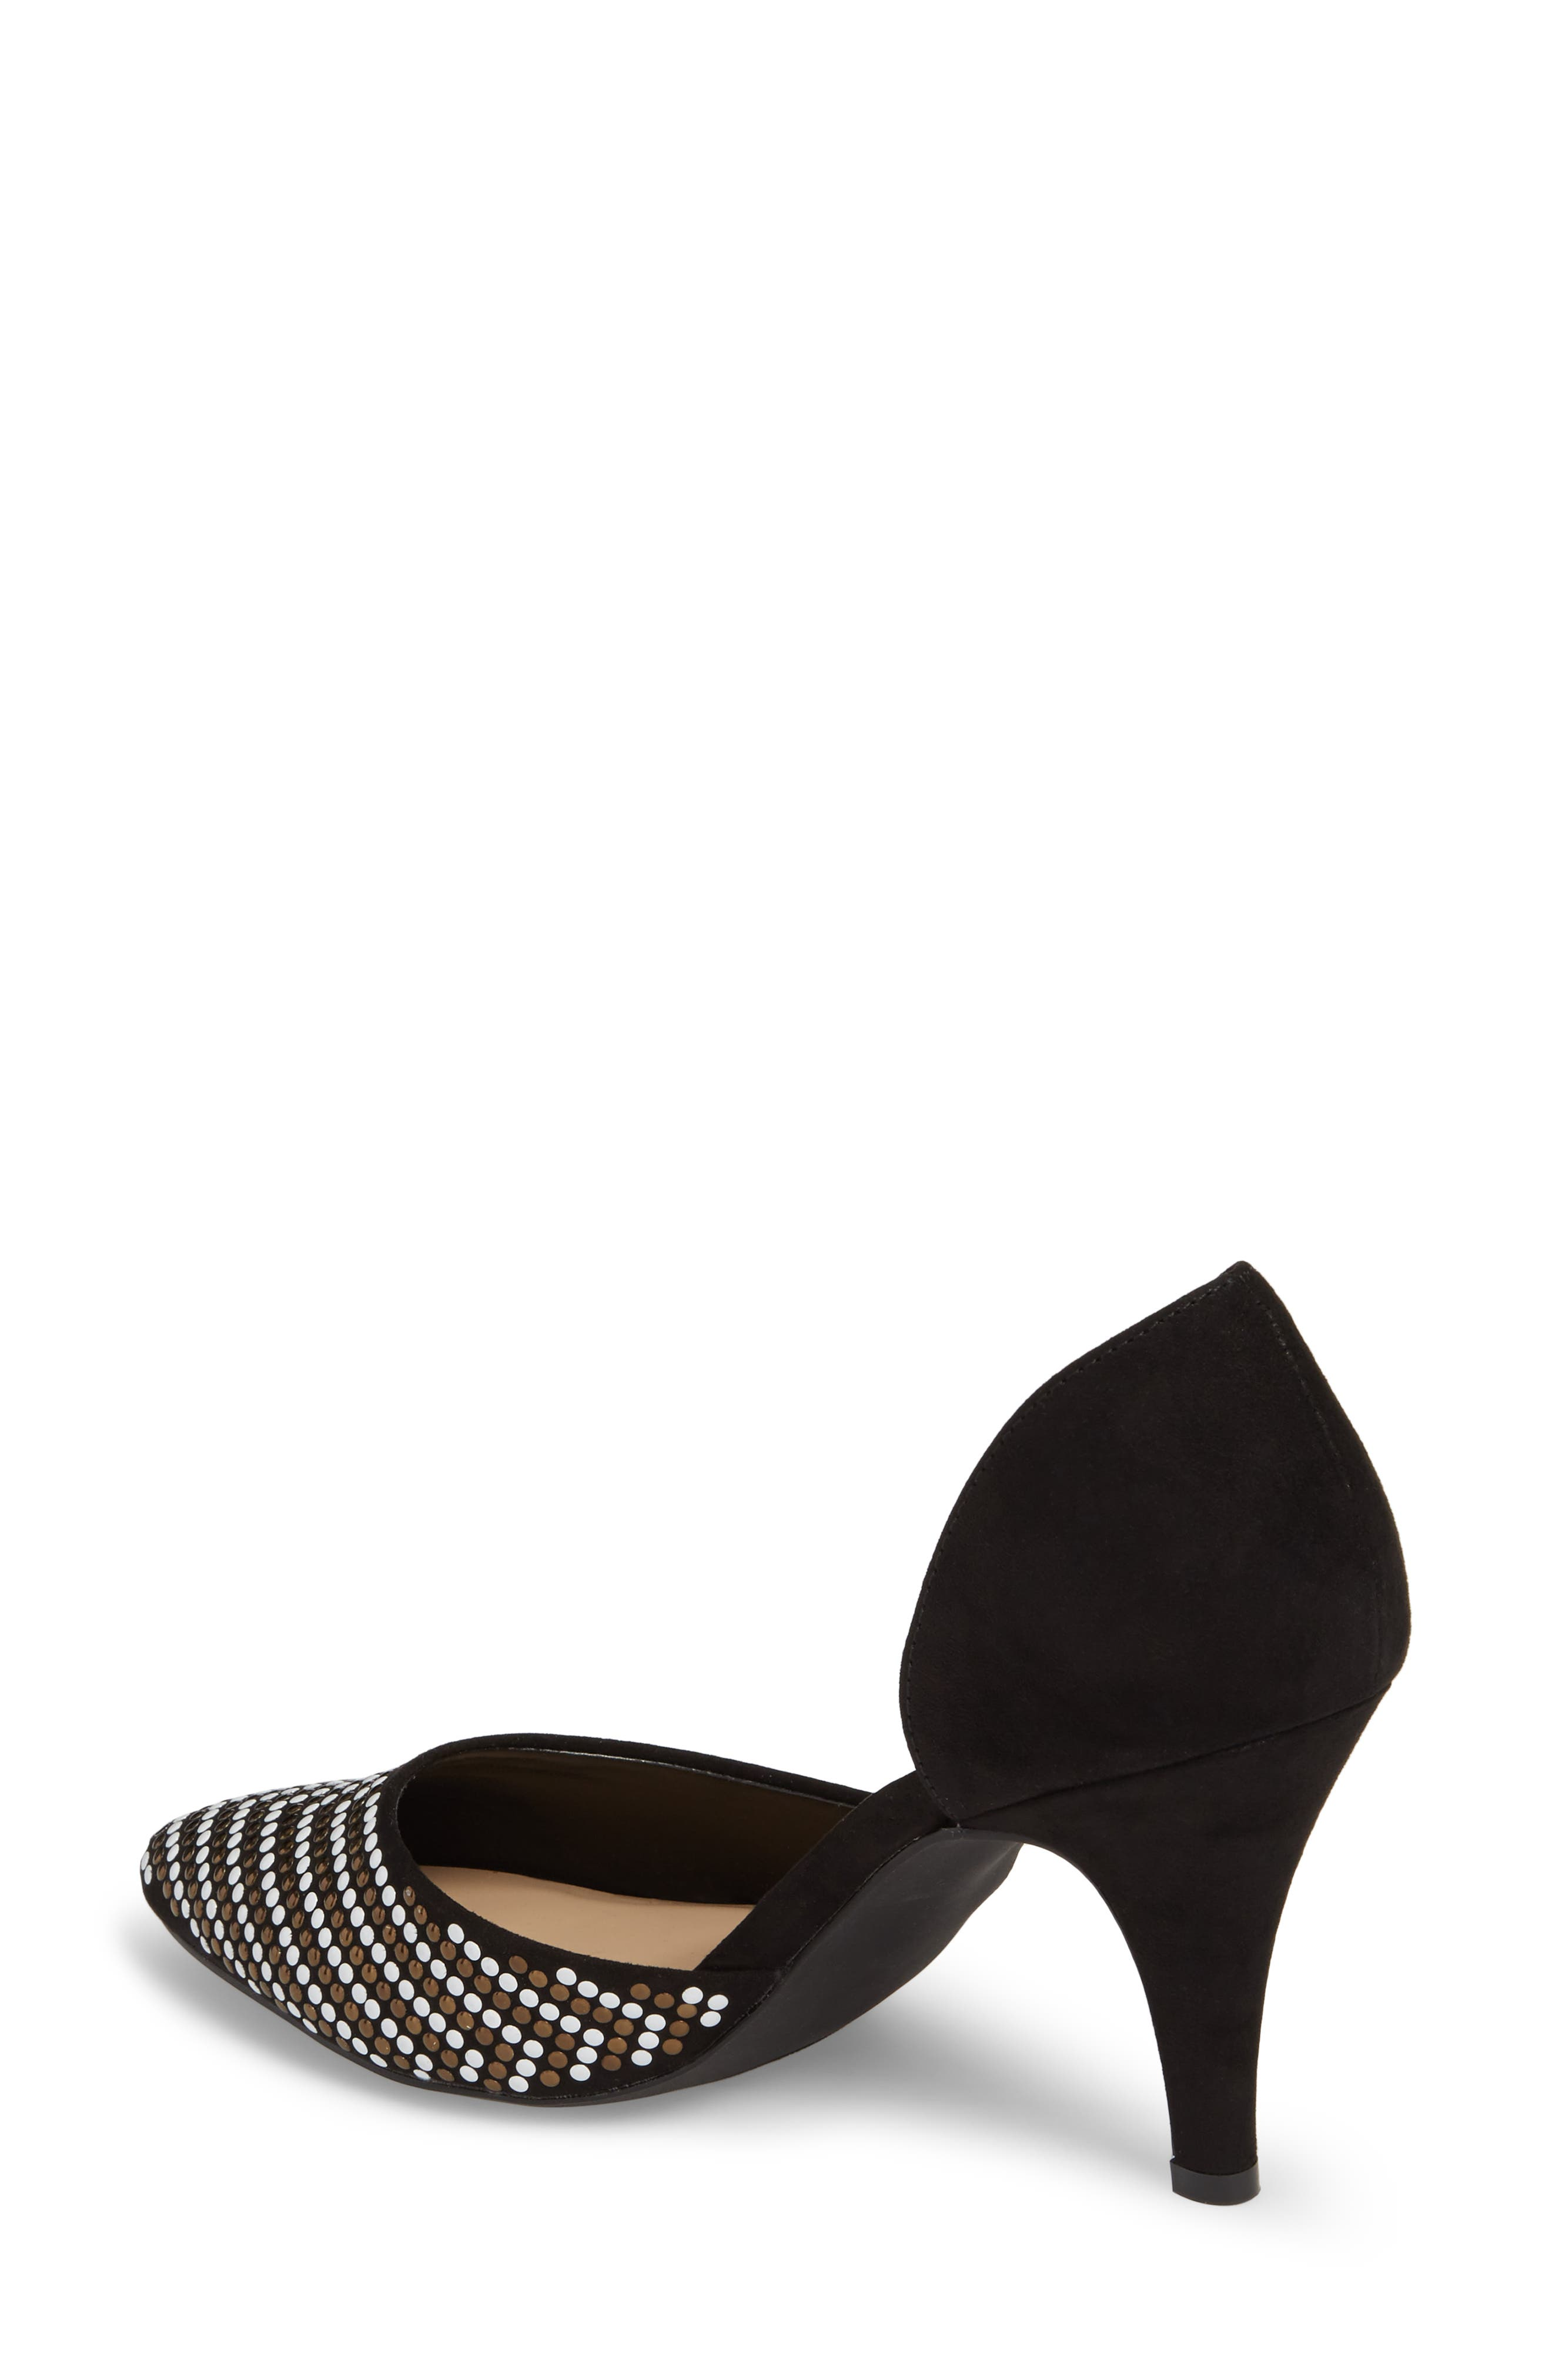 Mimosa Studded d'Orsay Pump,                             Alternate thumbnail 2, color,                             BLACK SUEDE